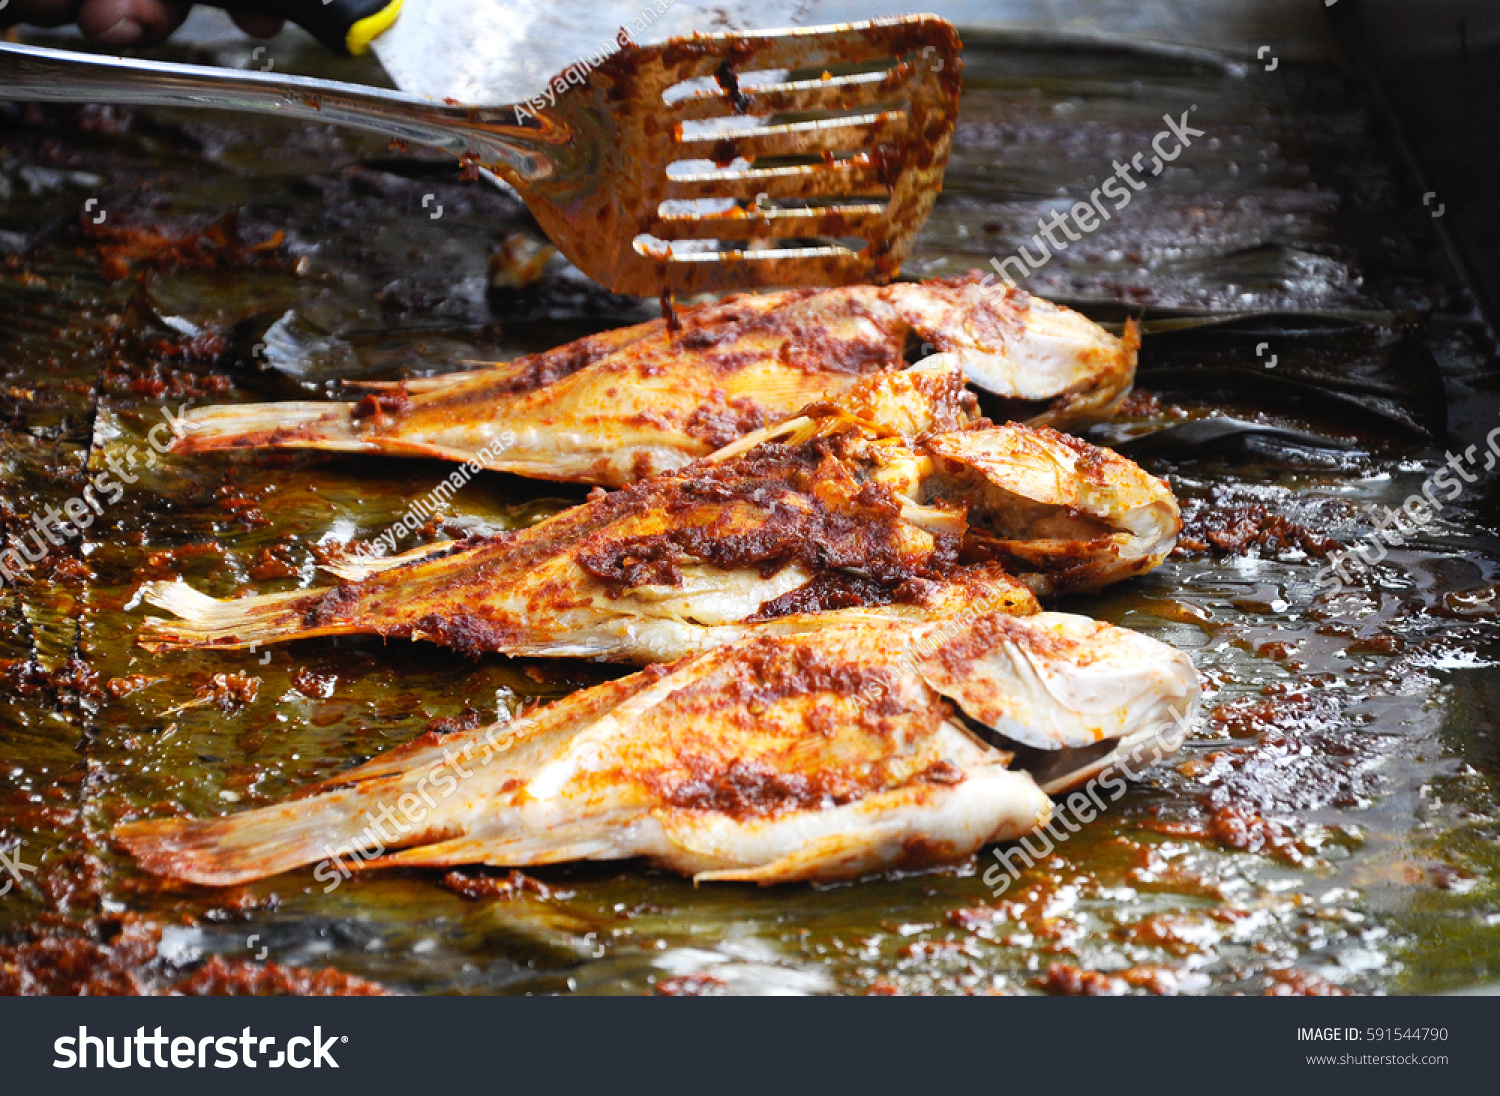 Grilled fish chili sauce grill on stock photo 591544790 for The fish grill